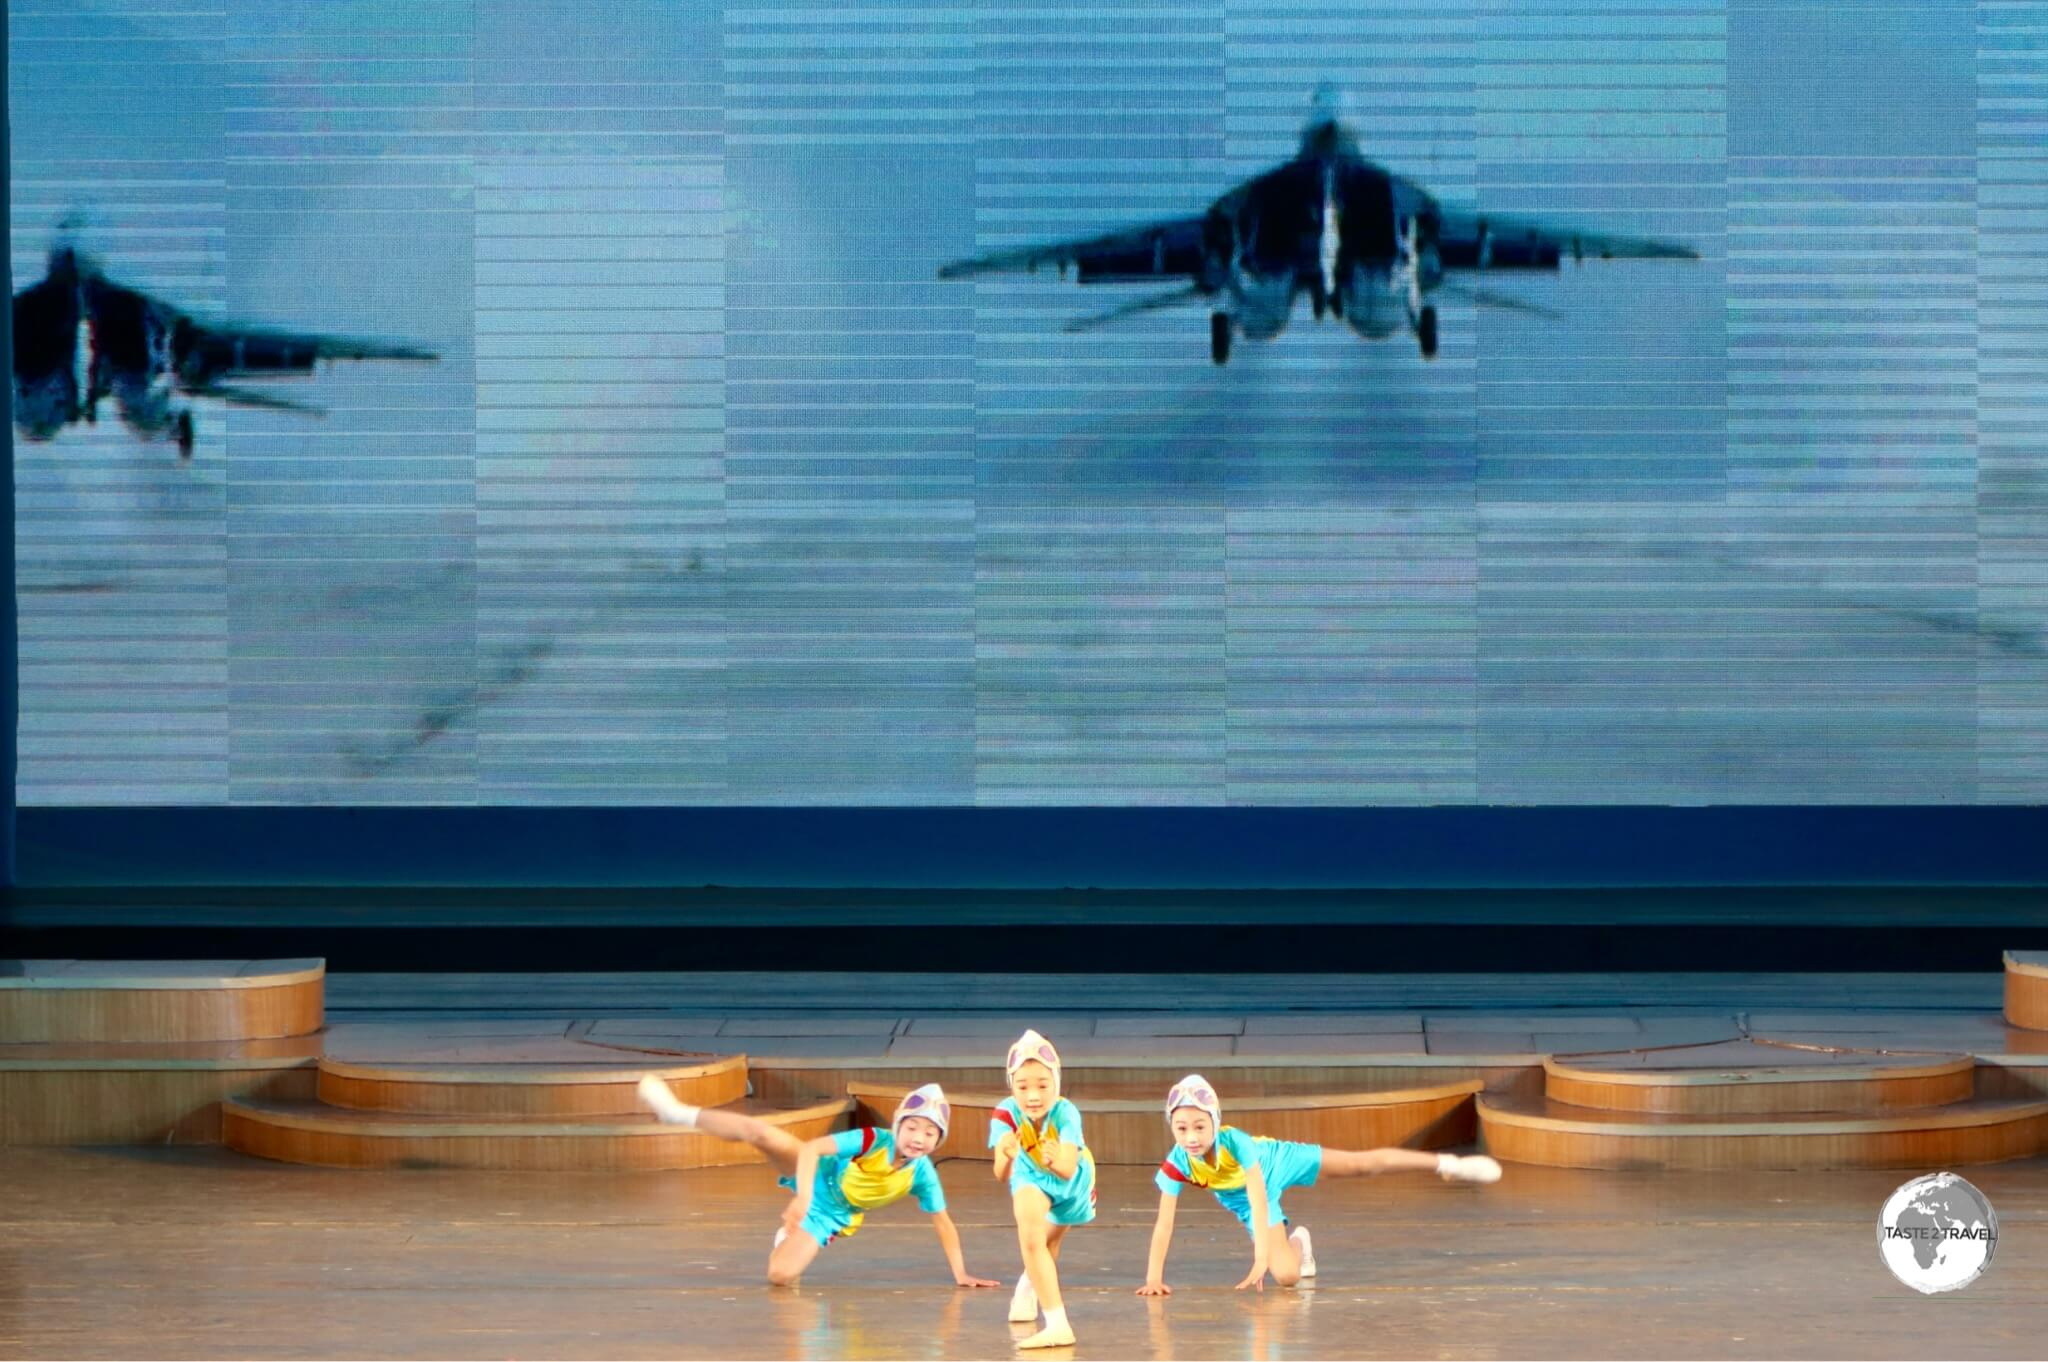 Girls performing a choreographed 'flight' routine in front of a screen displaying fighter jets.